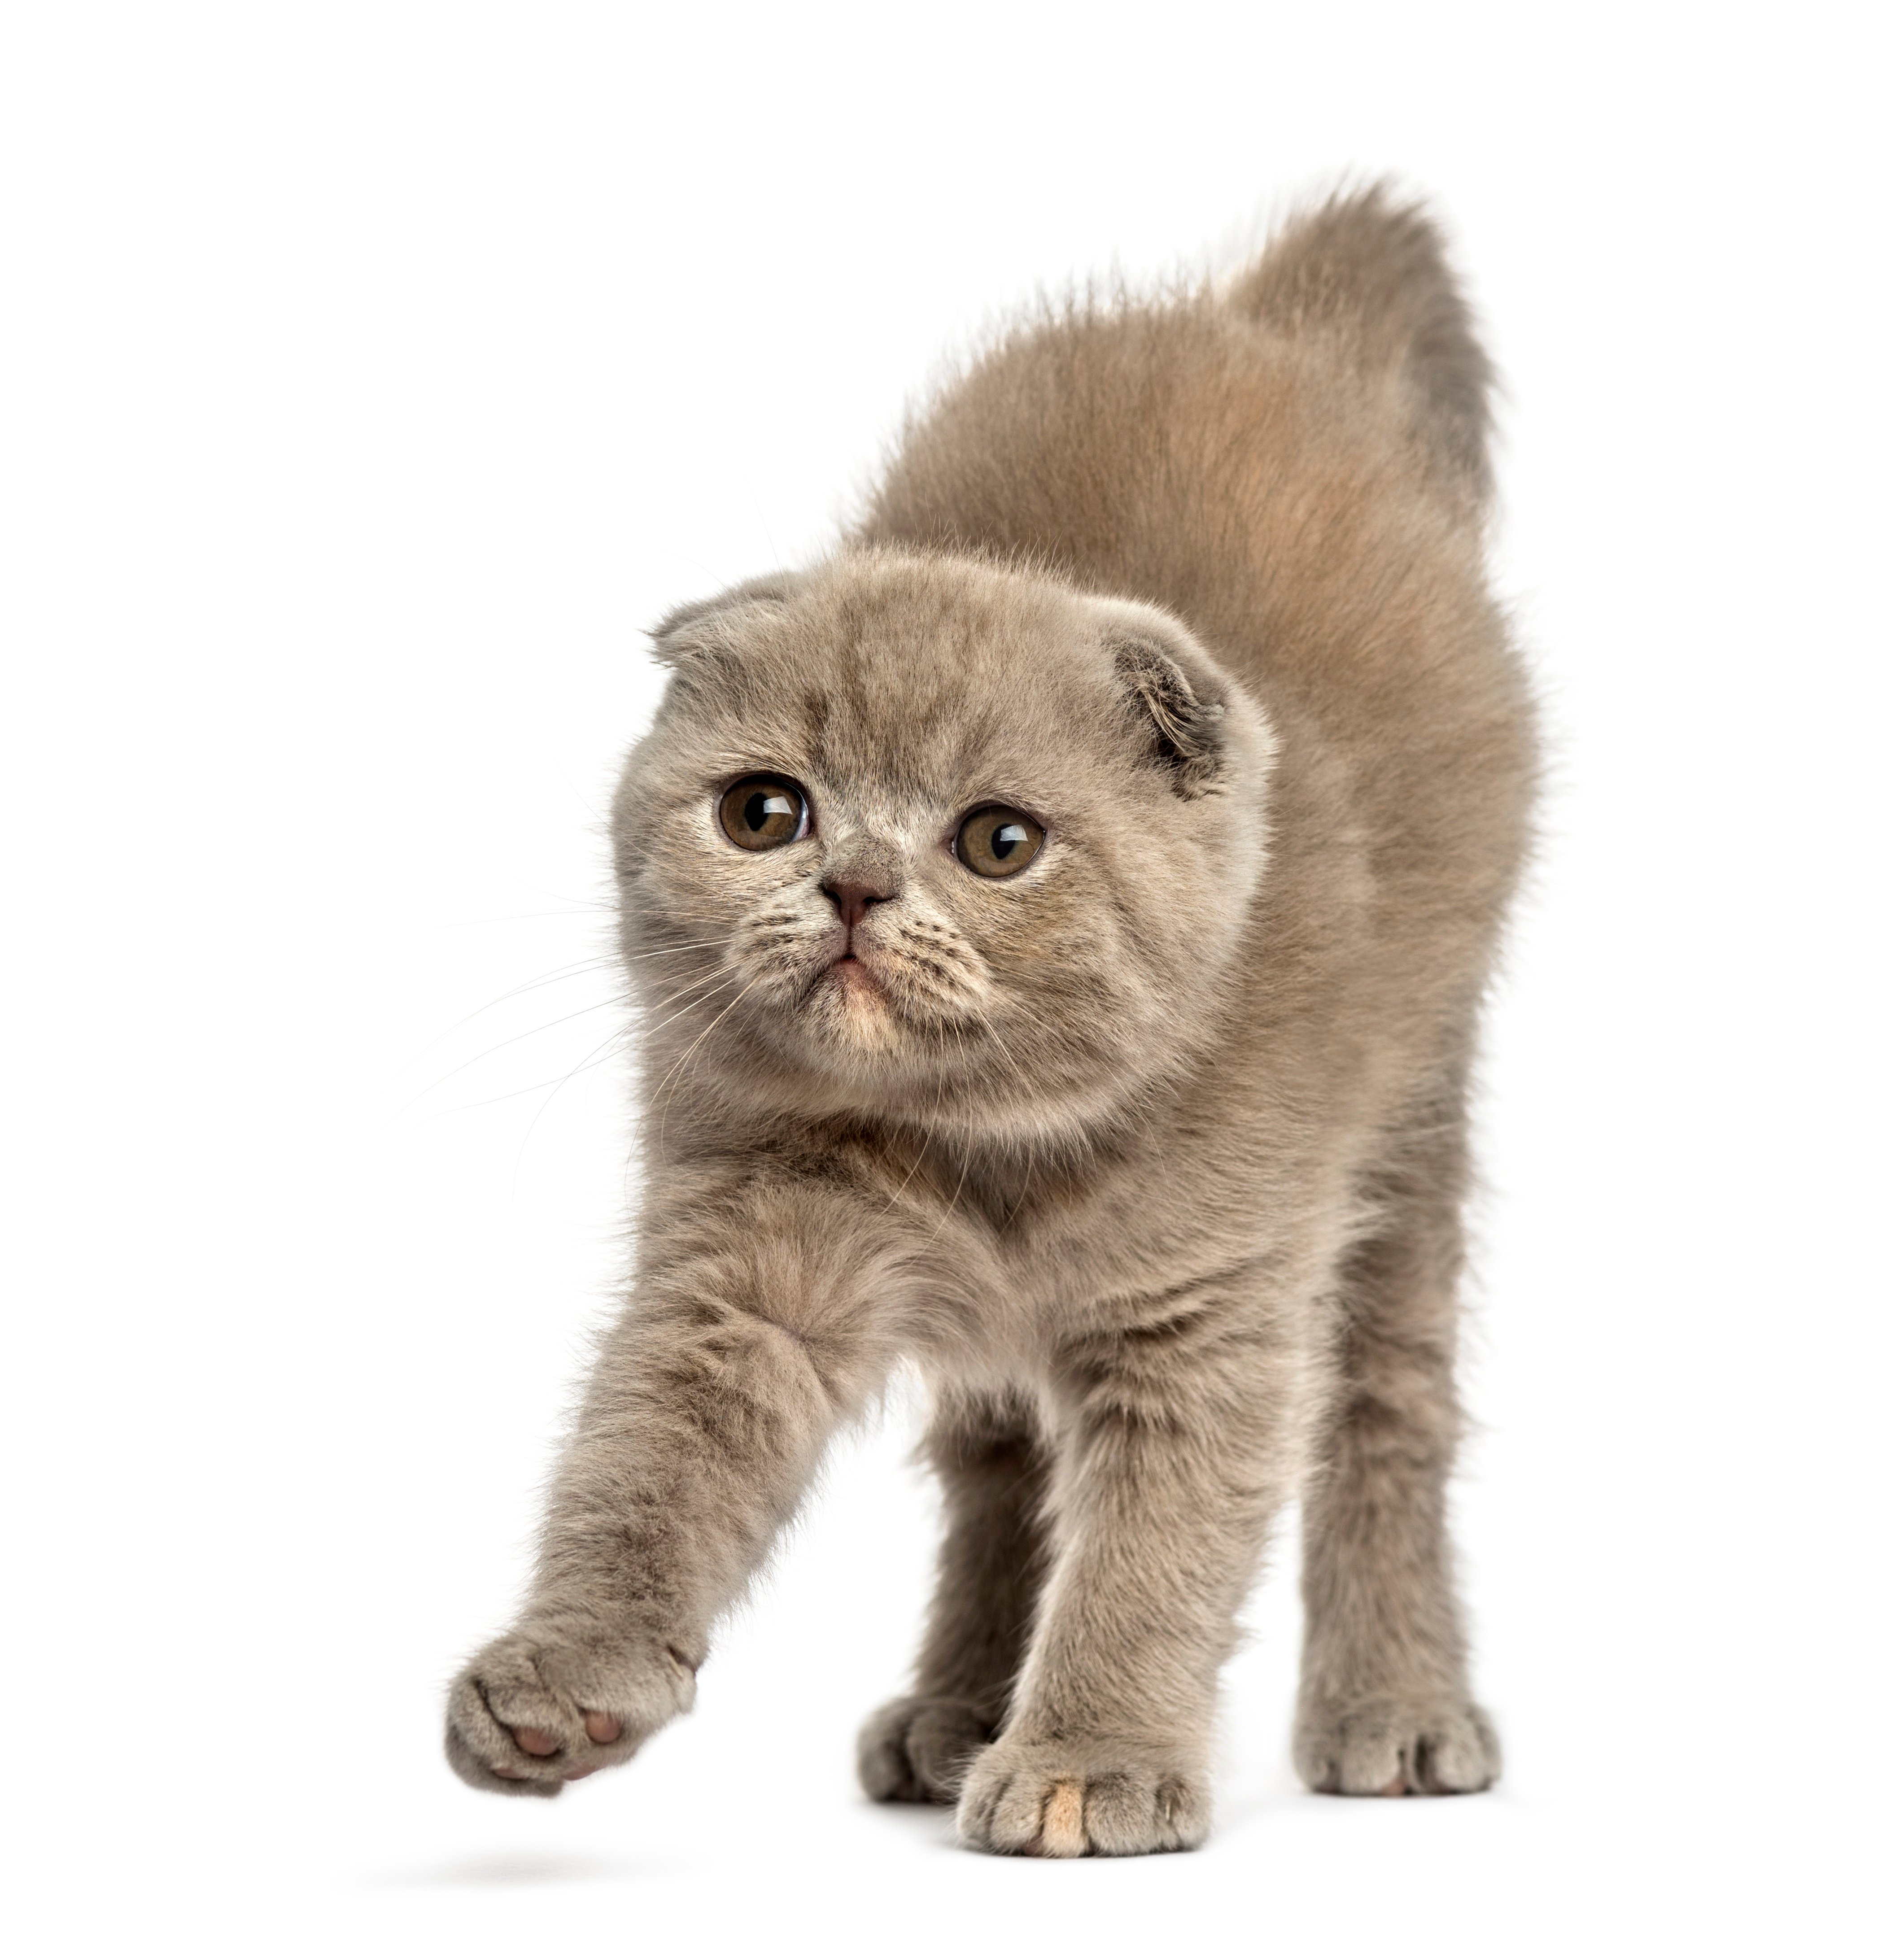 Foldex Mixed Cat Breed Pictures